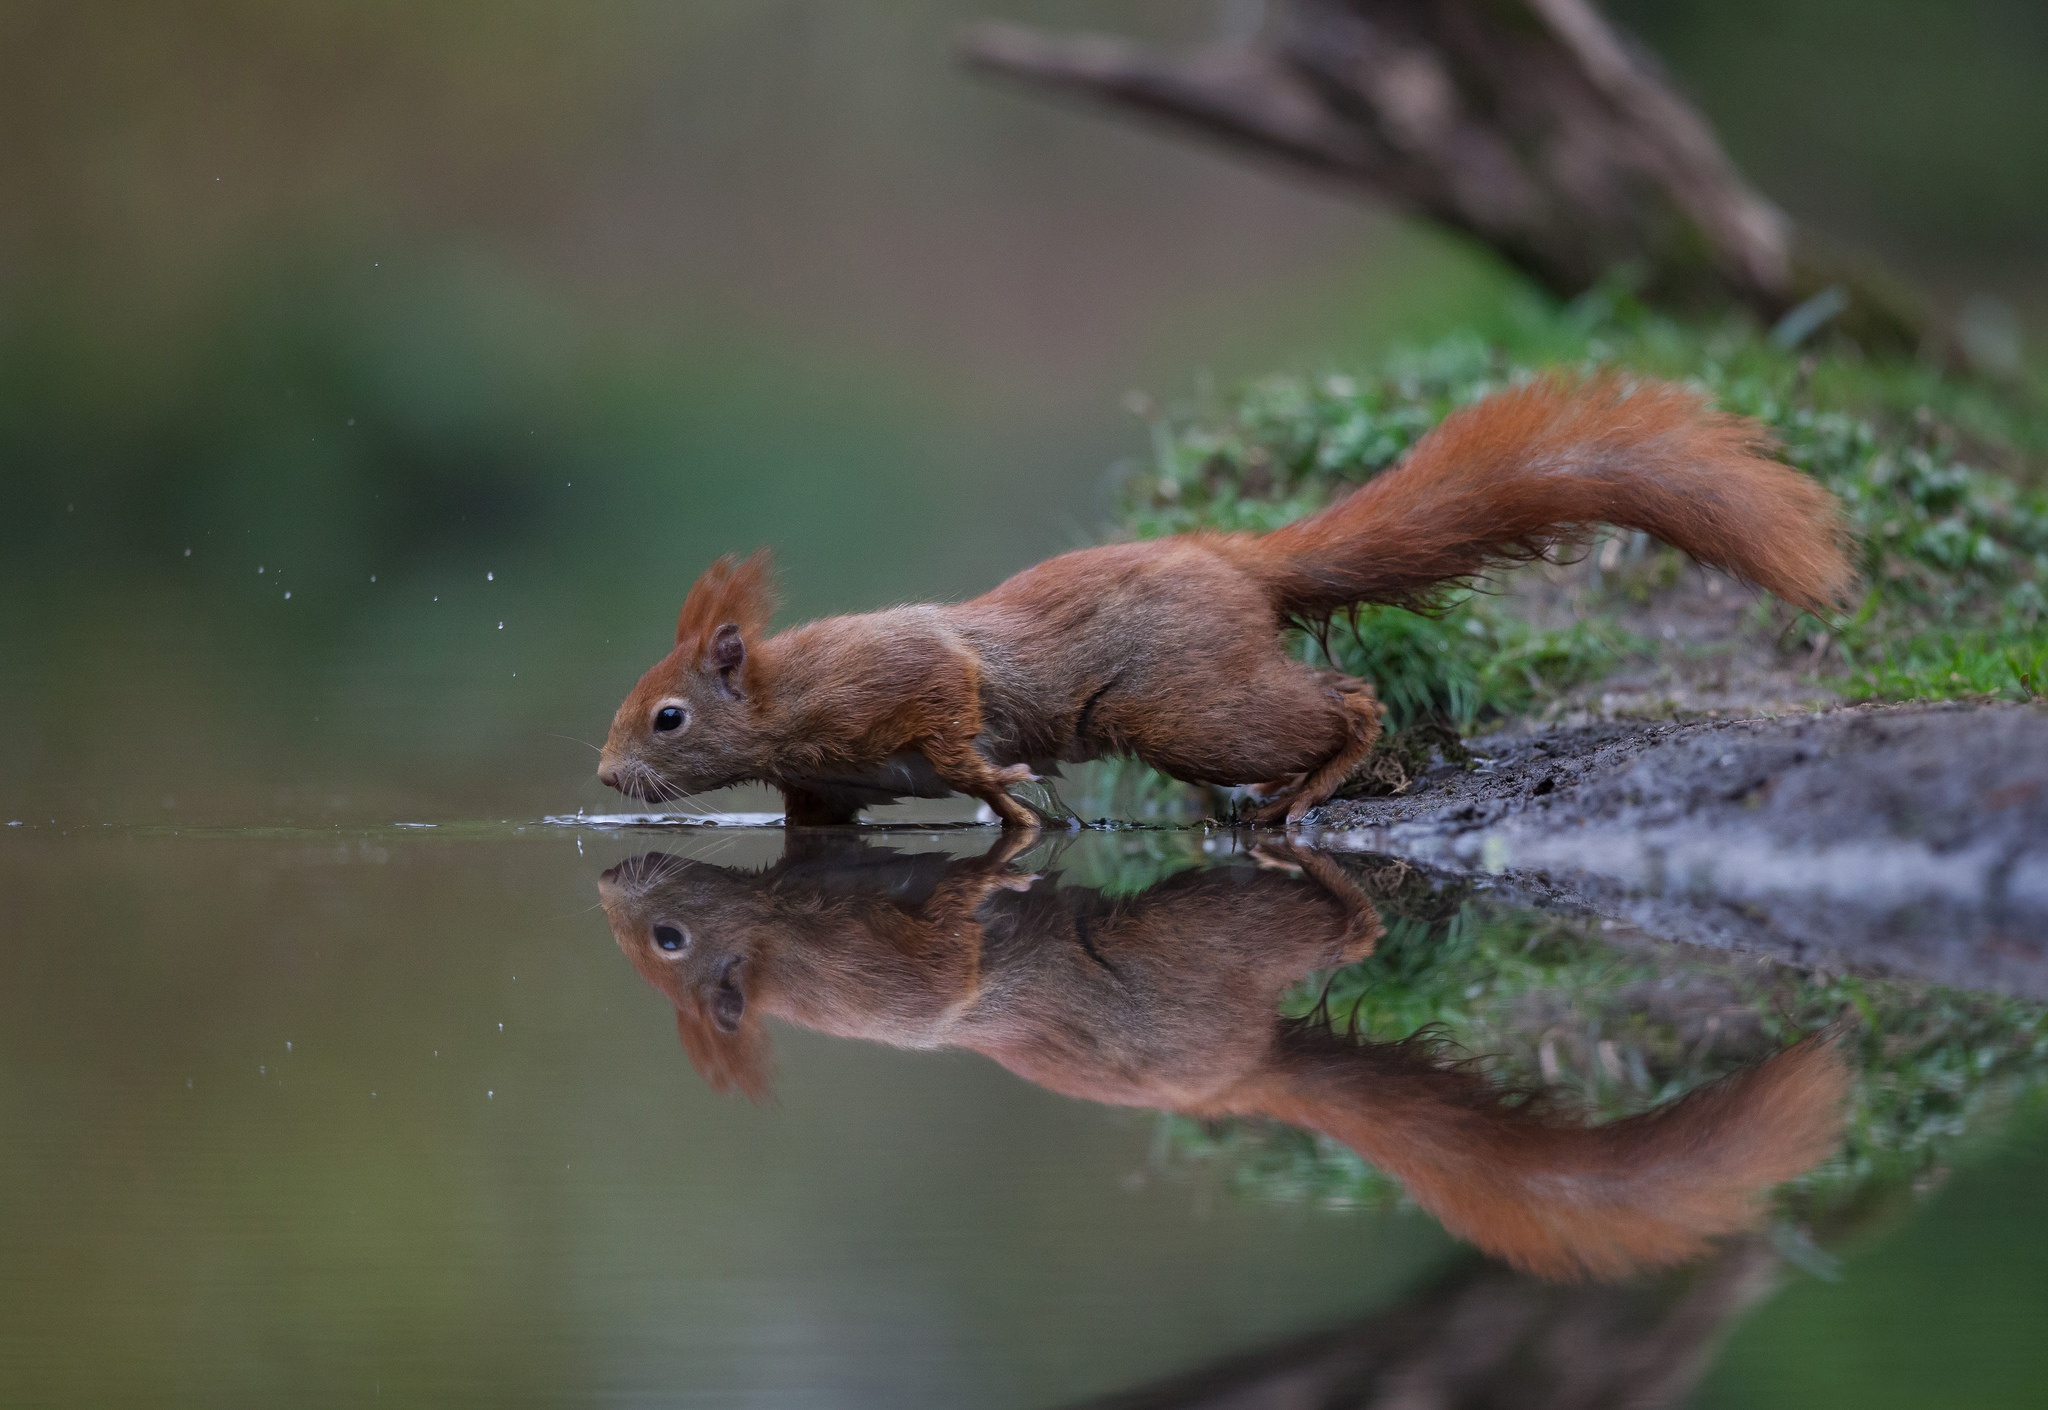 Squirrel Wildlife Rodent Reflection Water Animal 2048x1410